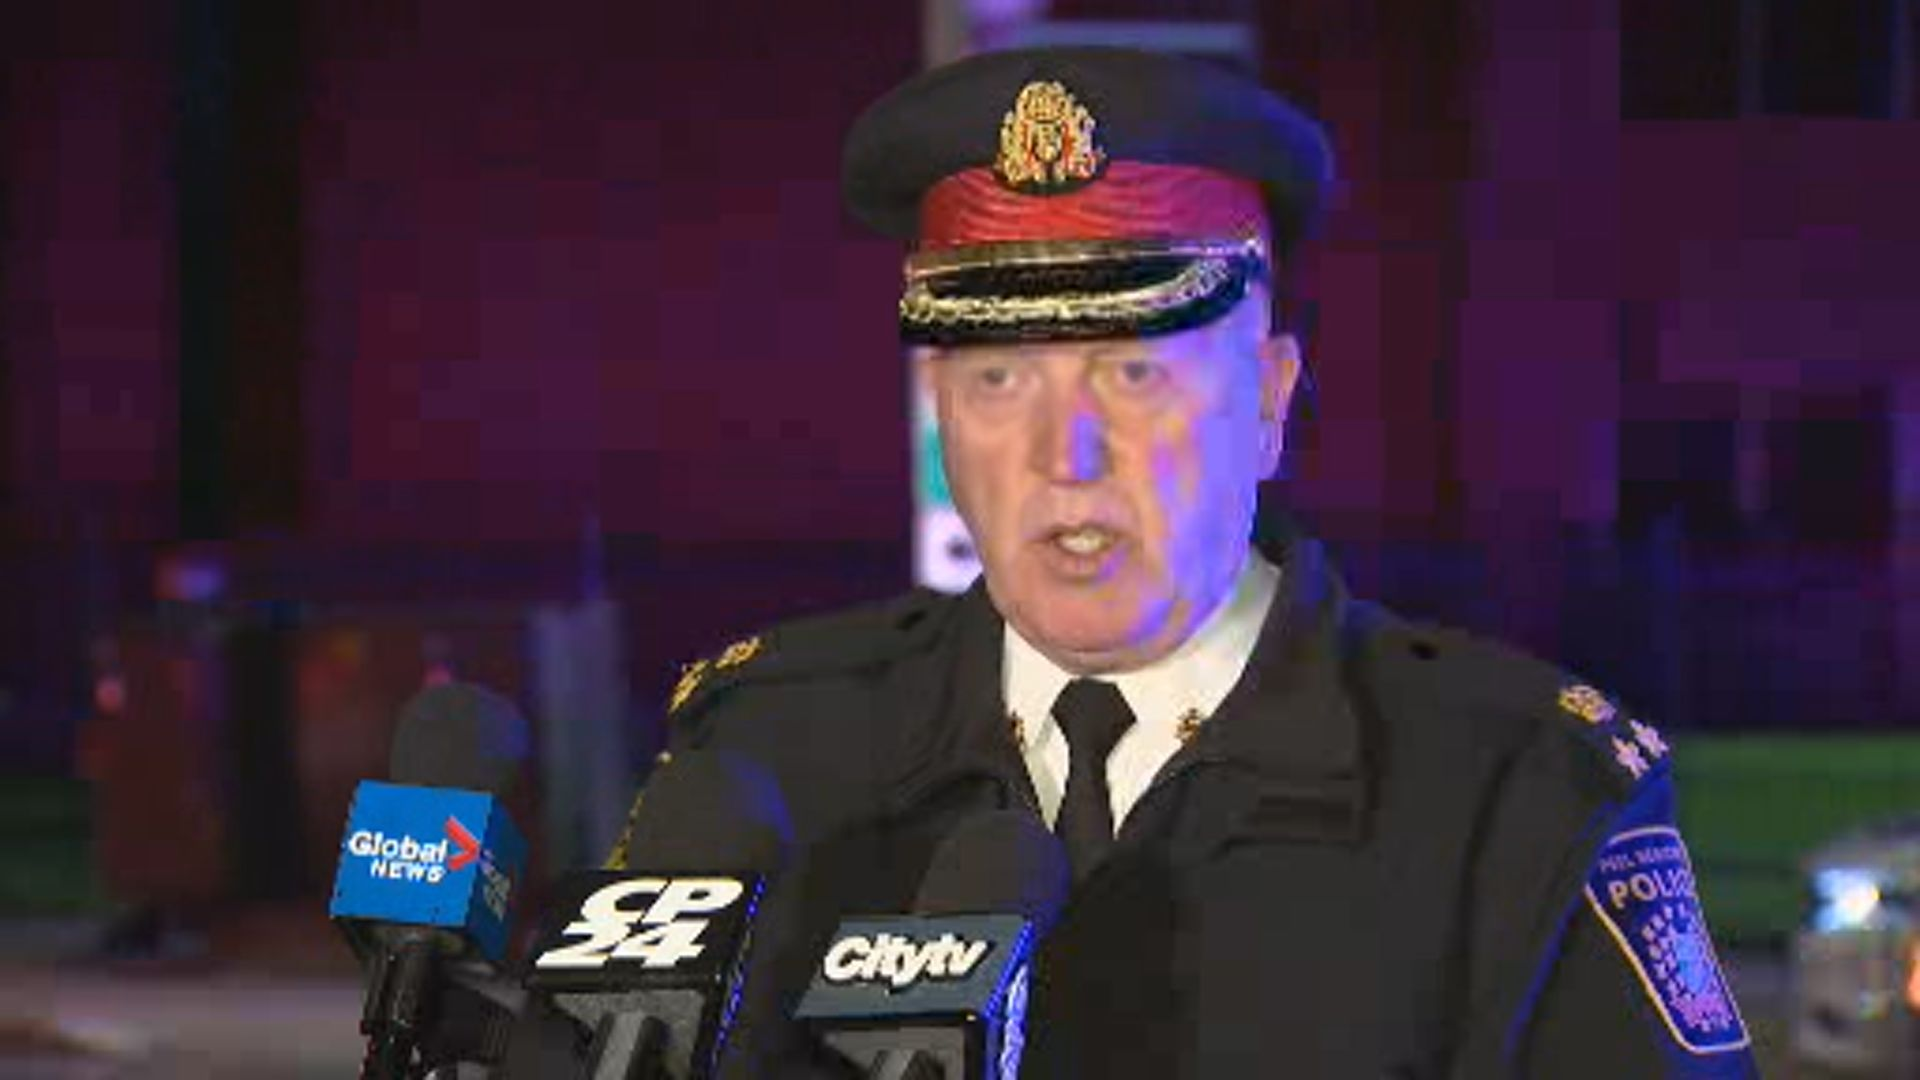 Peel police chief provides update on conditions of Mississauga shooting victims, says no one arrested